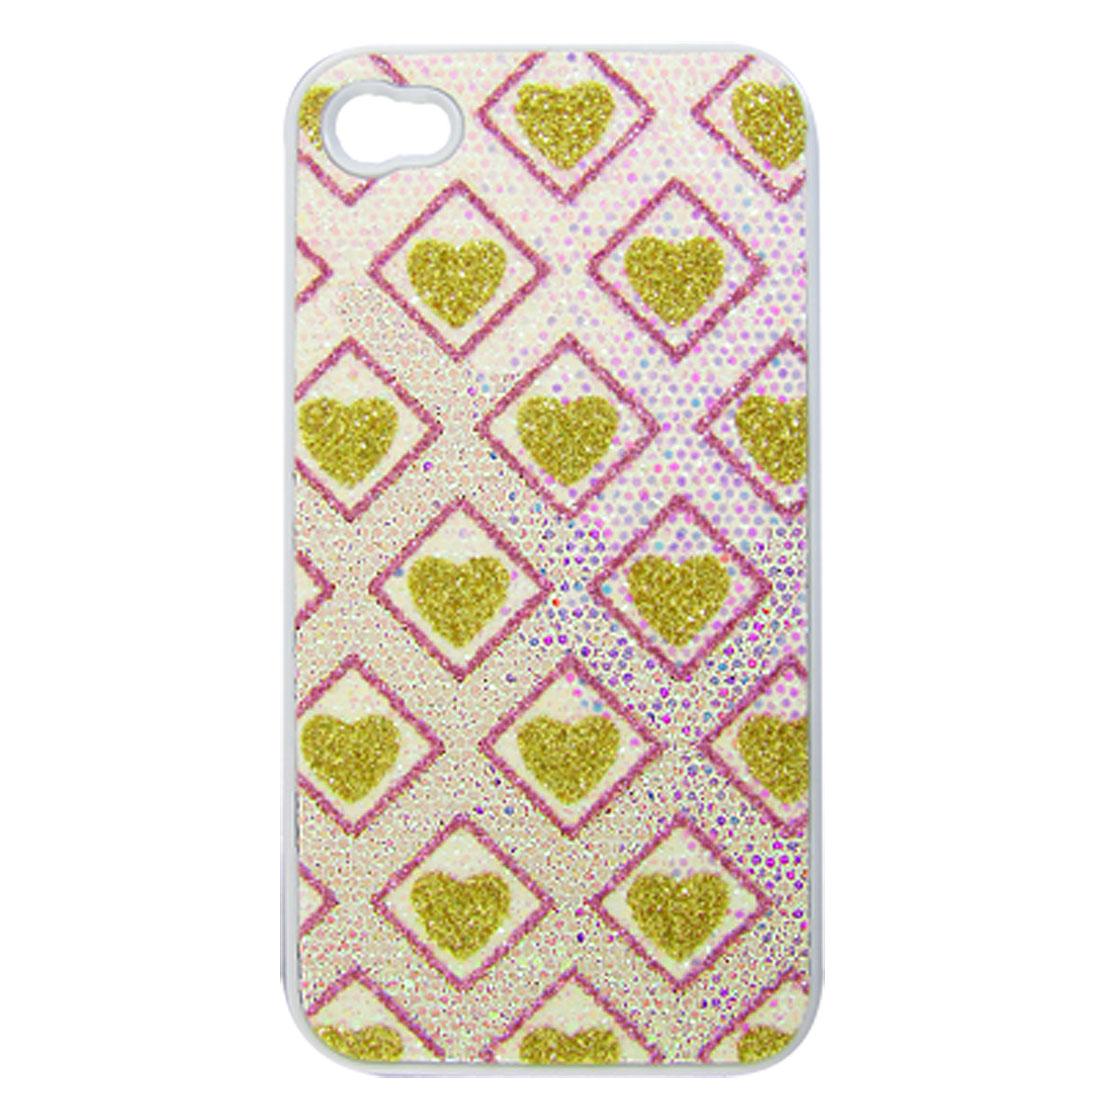 Pink Gold Tone Glittery Square Hard Back Case Cover for iPhone 4 4S 4G 4GS